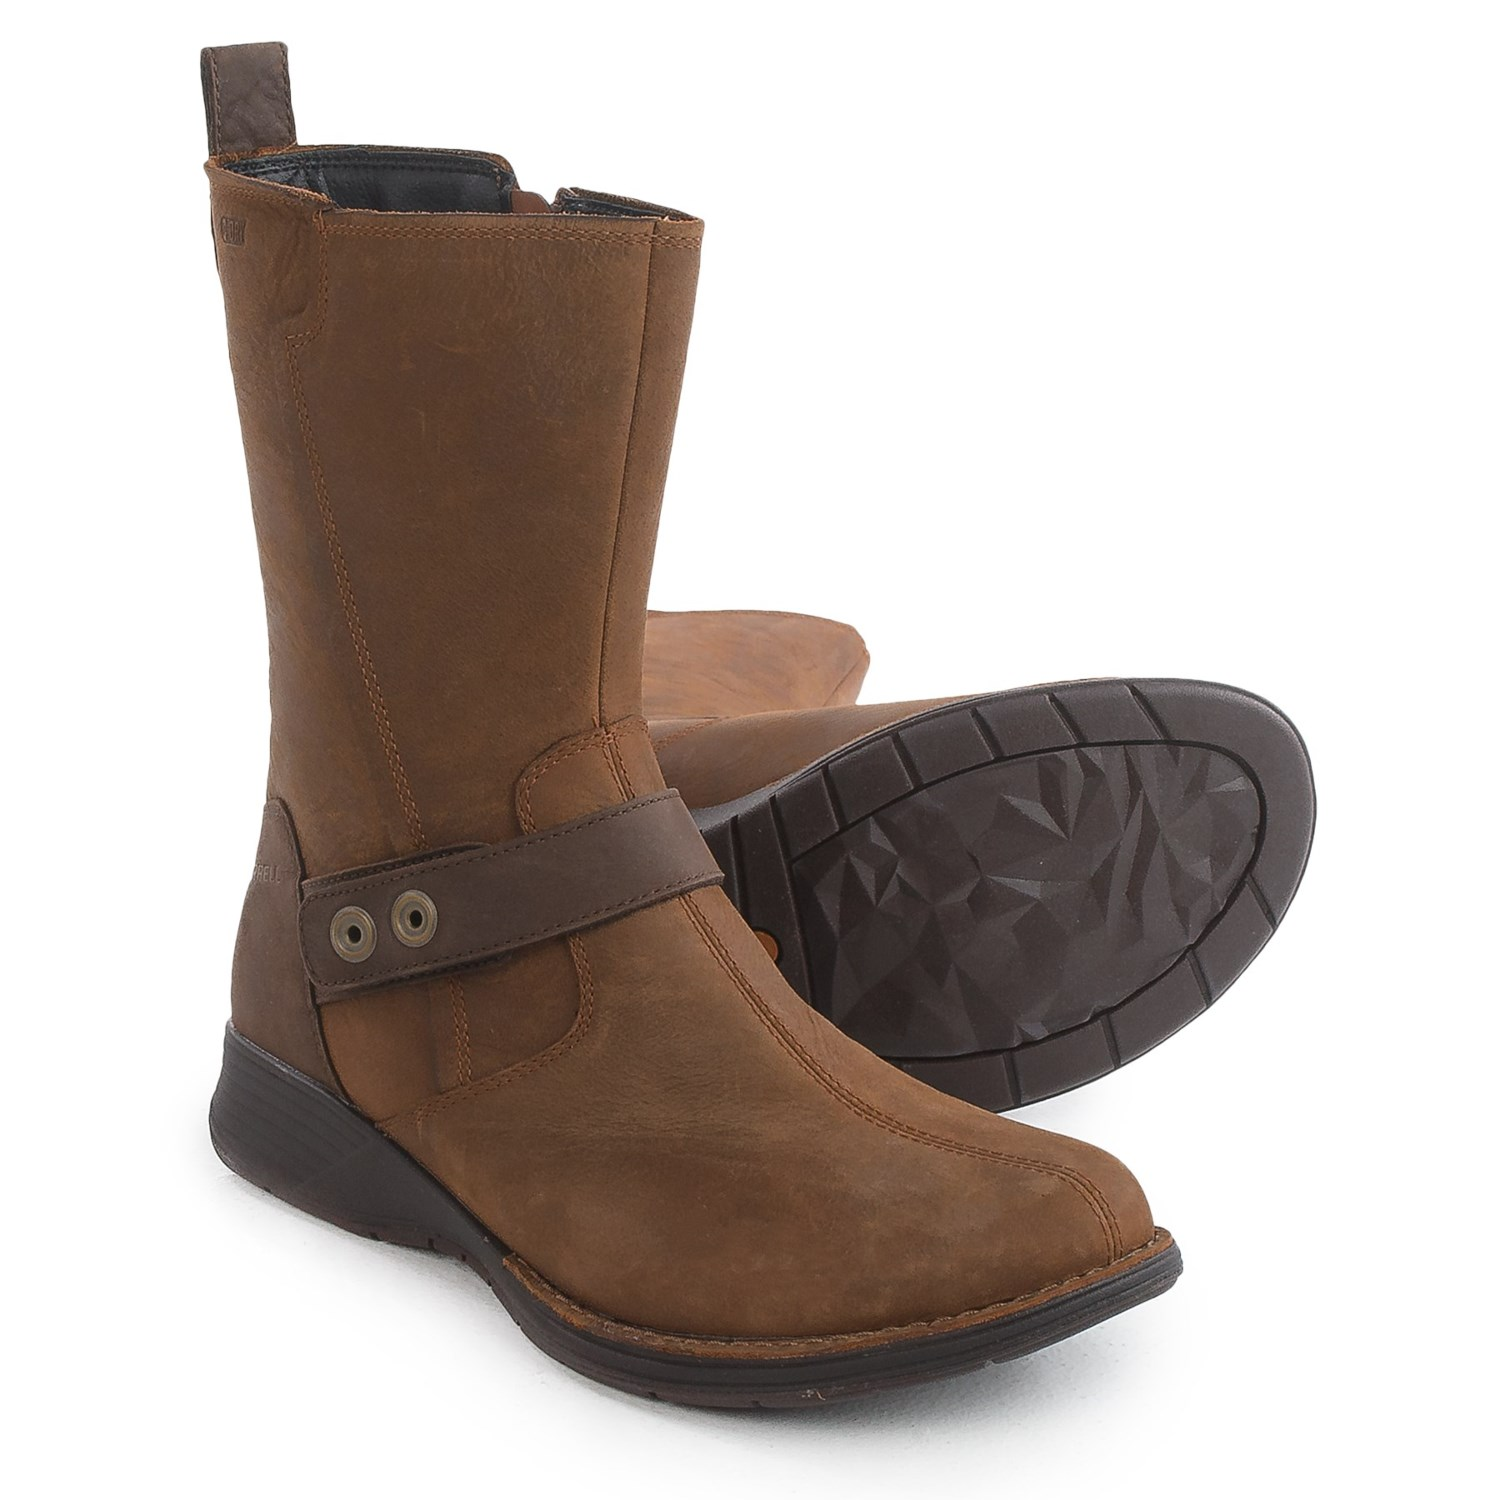 Leather work gloves ireland - Merrell Travvy Mid Rain Boots Waterproof Leather For Women In Merrell Tan